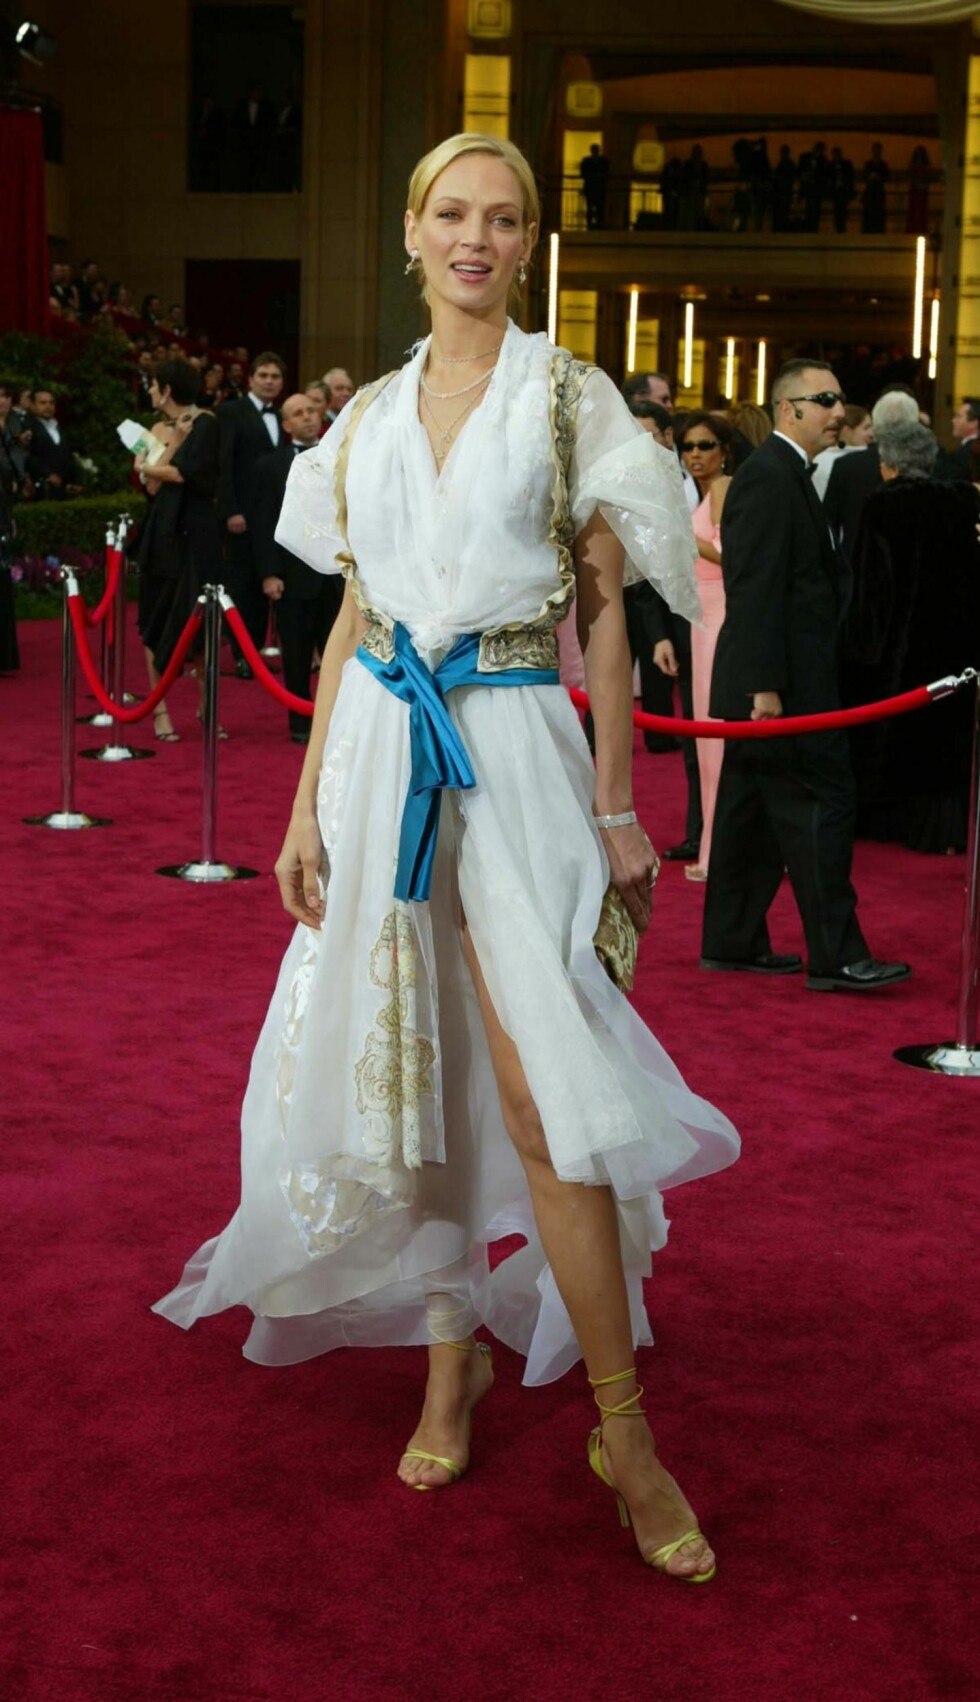 """Celebrities arrive at the 76th Annual Academy Awards® that was held at the Kodak Theatre in Hollywood on Sunday, February 29, 2004 Shown here is Uma Thurman  Pictures by Russell Einhorn                  Ref: RE 290204 A   The Oscar statuette is the copyrighted property of the Academy of Motion Picture Arts and Sciences, and the statuette and the phrases """"Academy Award(s)"""" and """"Oscar"""" are registered trademarks under the laws of the United States and other countries. All published representations of the Award of Merit statuette, including photographs, drawings and other likenesses, must include the legend ©A.M.P.A.S.® to provide notice of copyright, trademark and service mark registration.   Los Angeles:310-821-2666 New York:212-619-2666 London:207-107-2666 photodesk@splashnews.com Foto: Russell Einhorn  / Splash News/ All Over Press"""